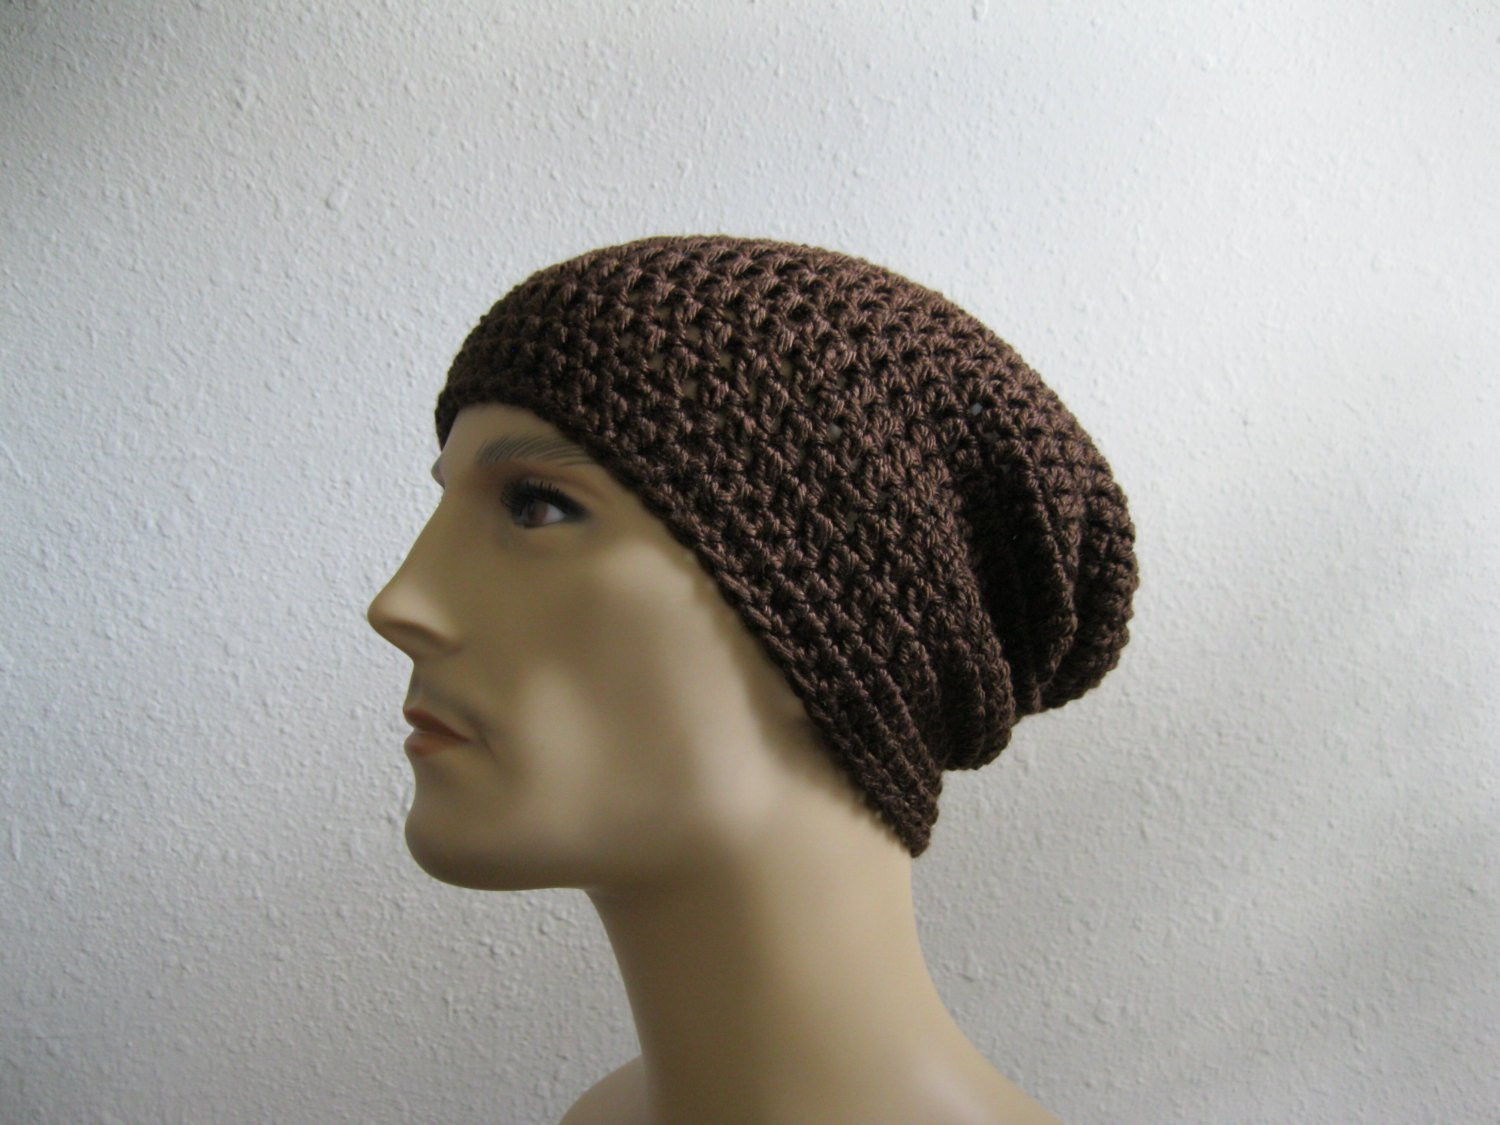 Awesome Crochet Beanie Slouchy Beanie Mens Hat Crochet Slouchy Mens Slouchy Beanie Hats Of Amazing 47 Models Mens Slouchy Beanie Hats